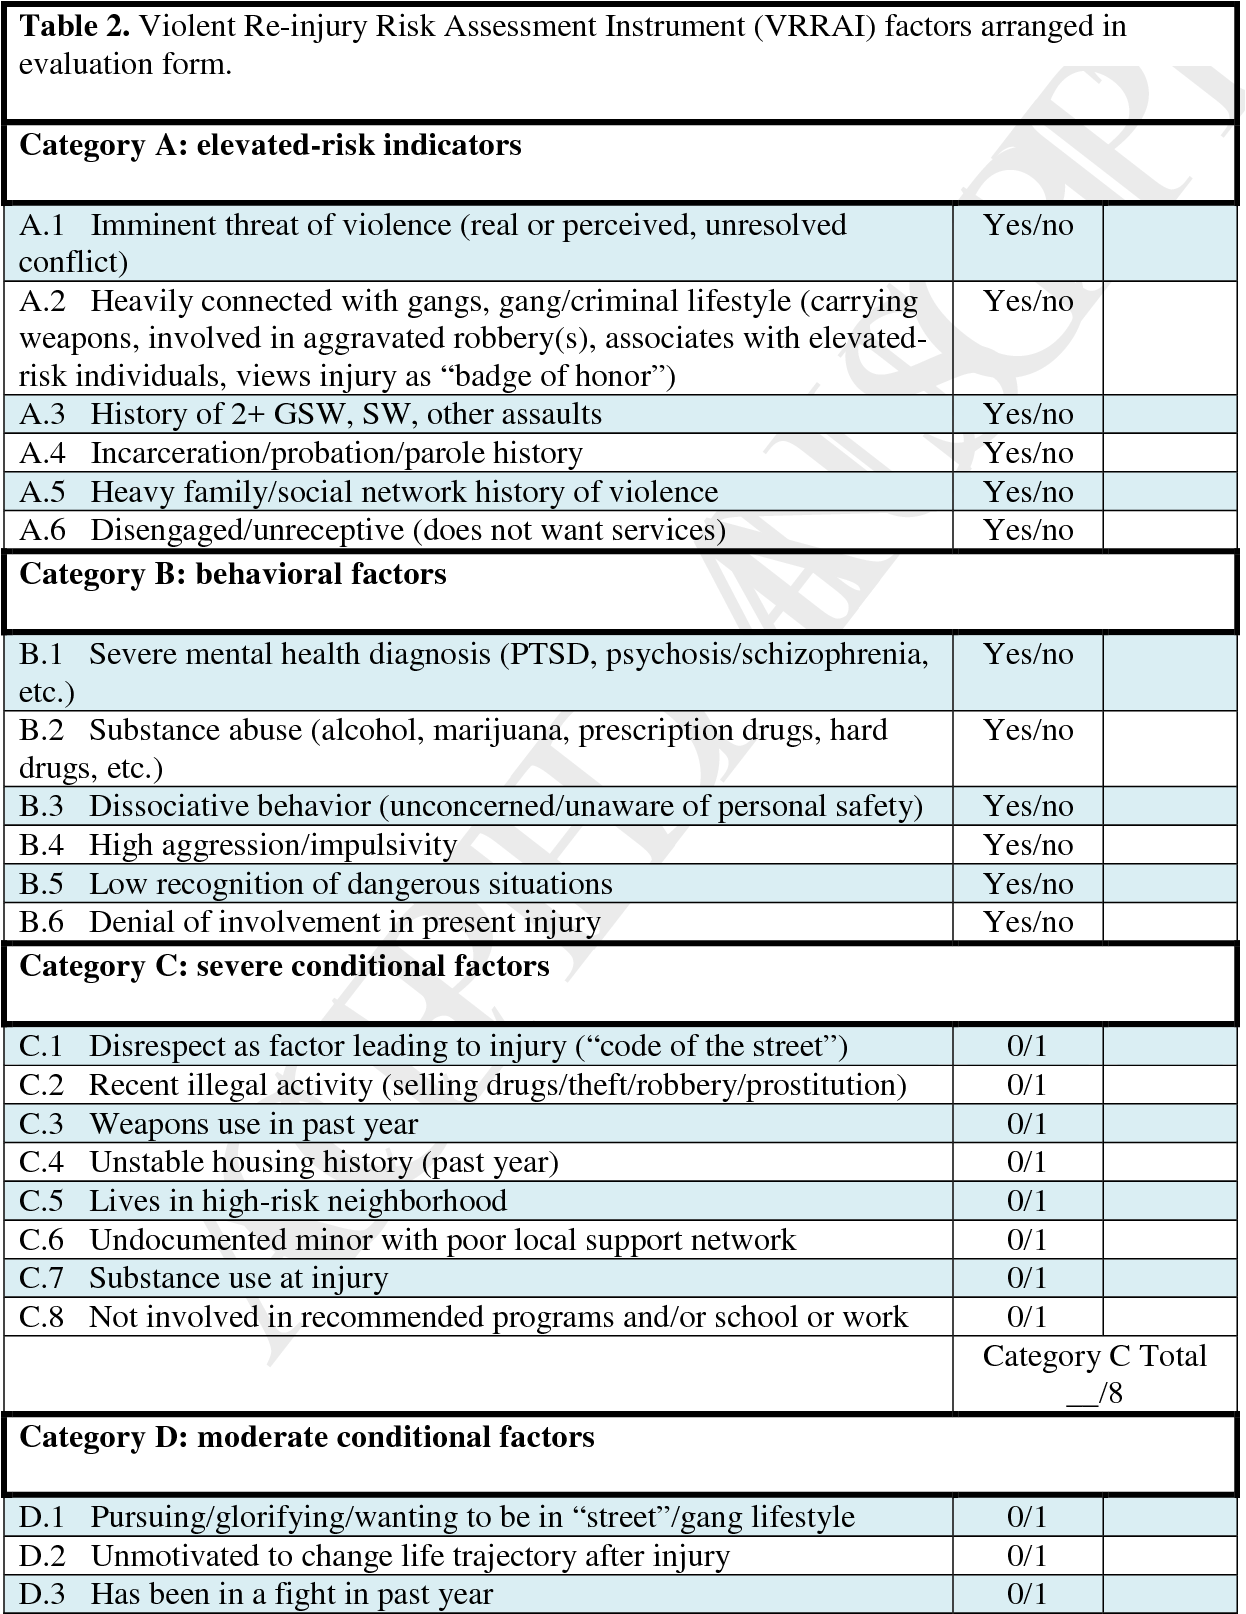 Table 2 From Violent Reinjury Risk Assessment Instrument